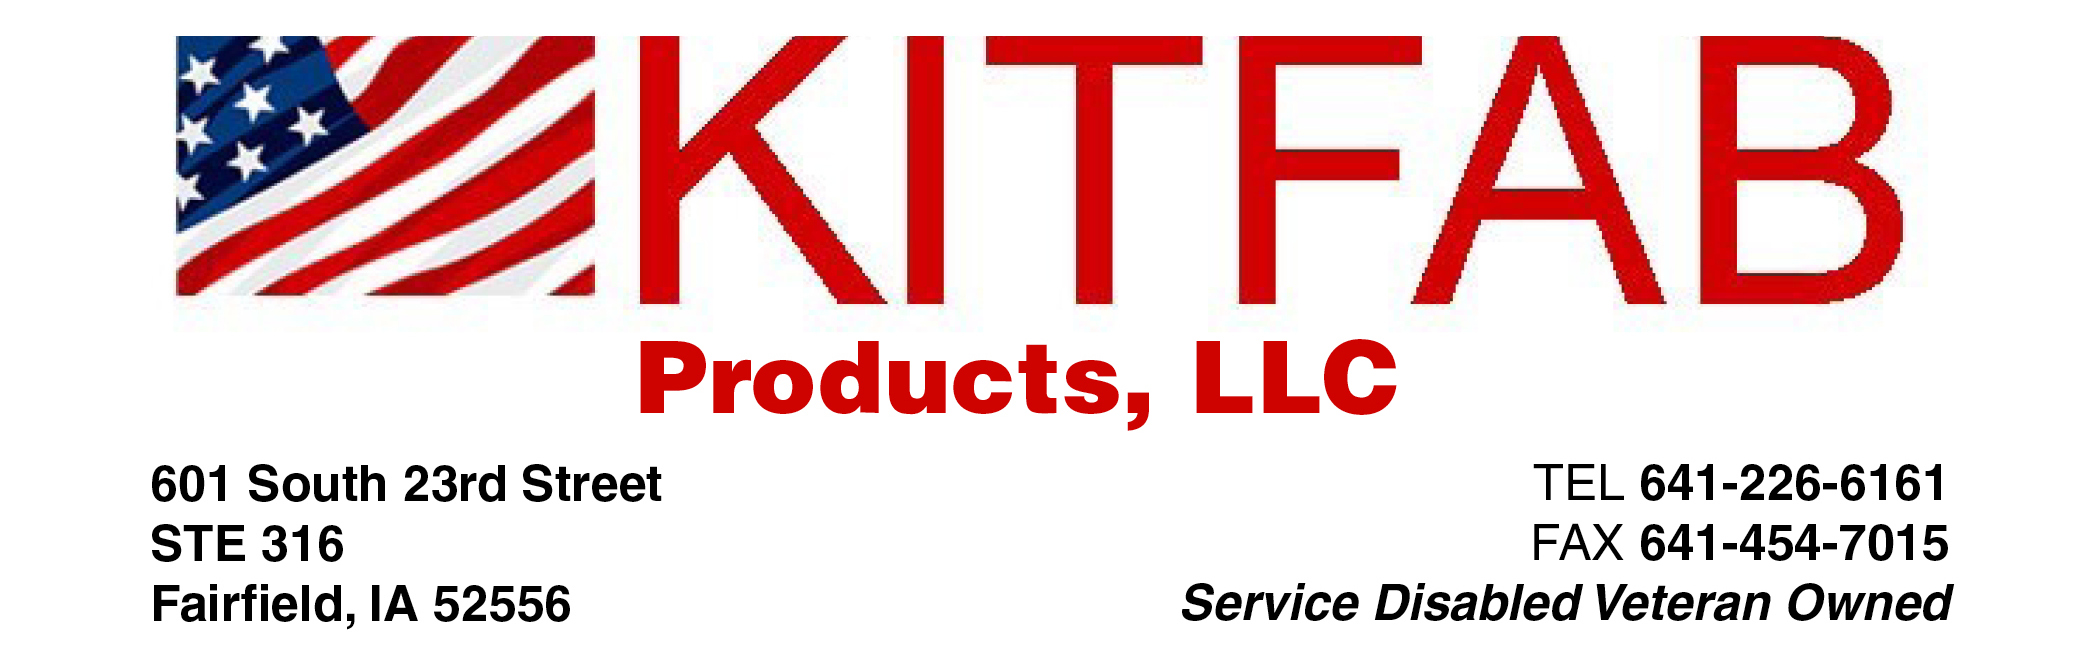 KITFAB Products, LLC